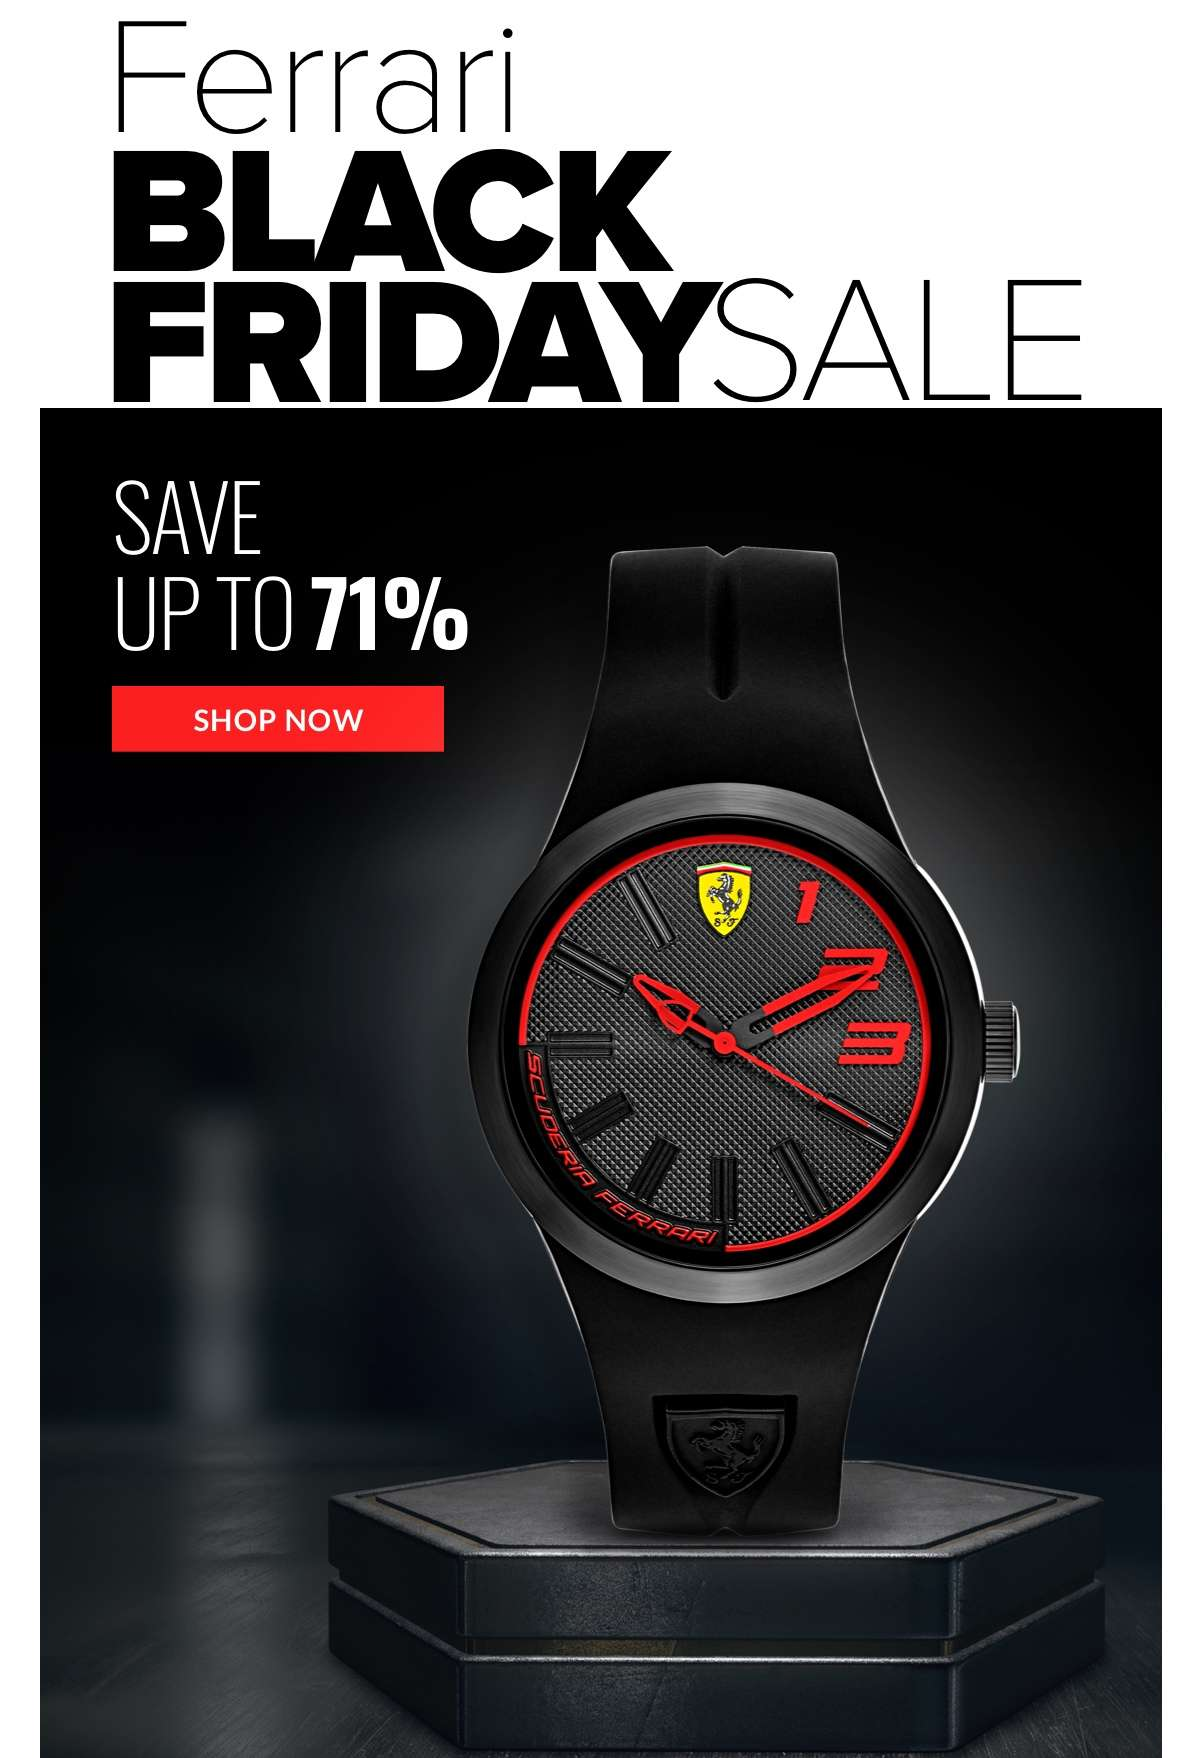 Ferrari Black Friday Sale Save up to 71% SHOP NOW